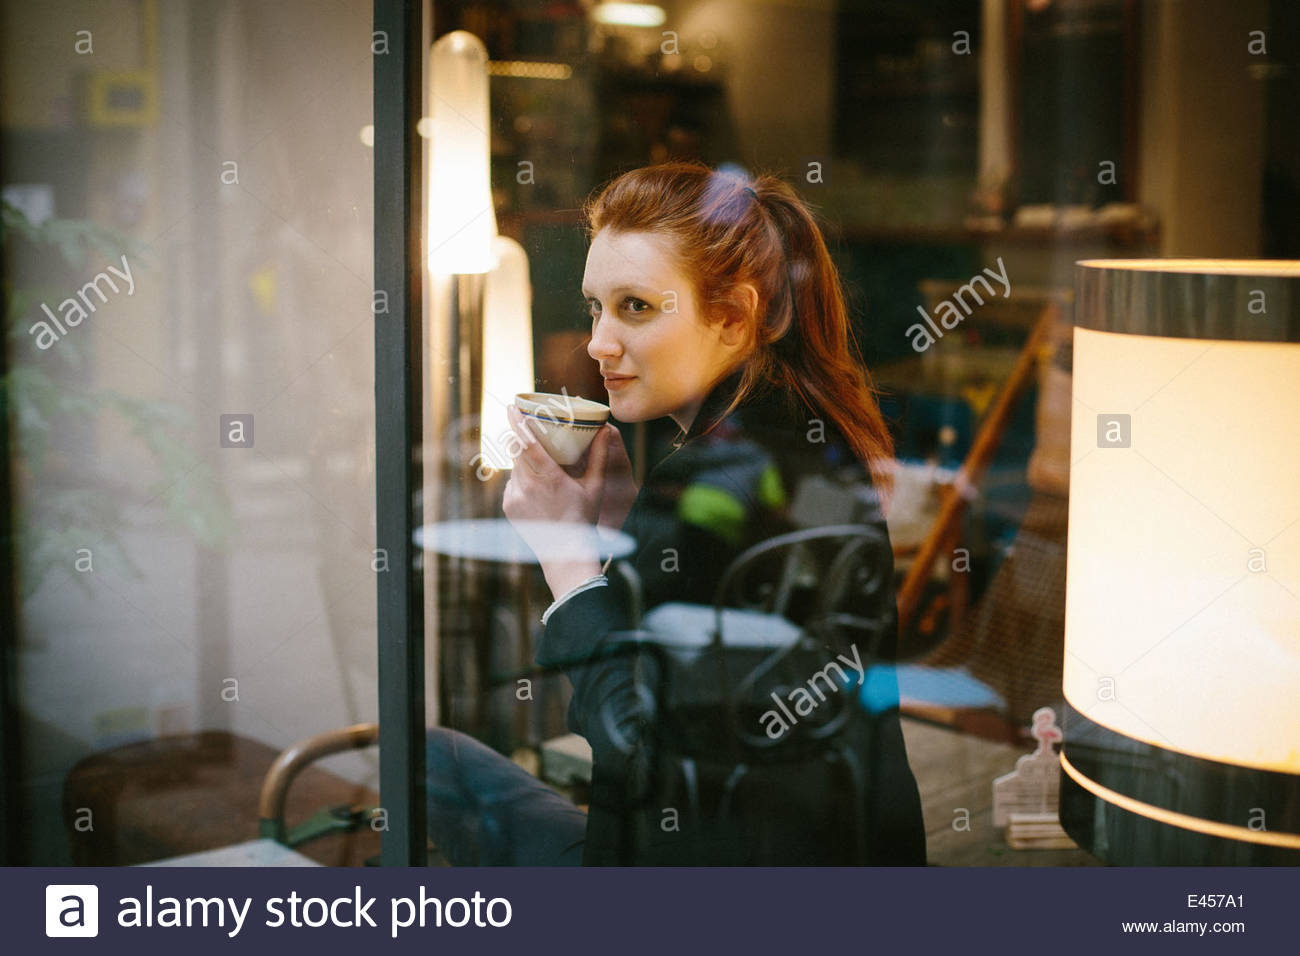 Woman sitting in cafe - Stock Image